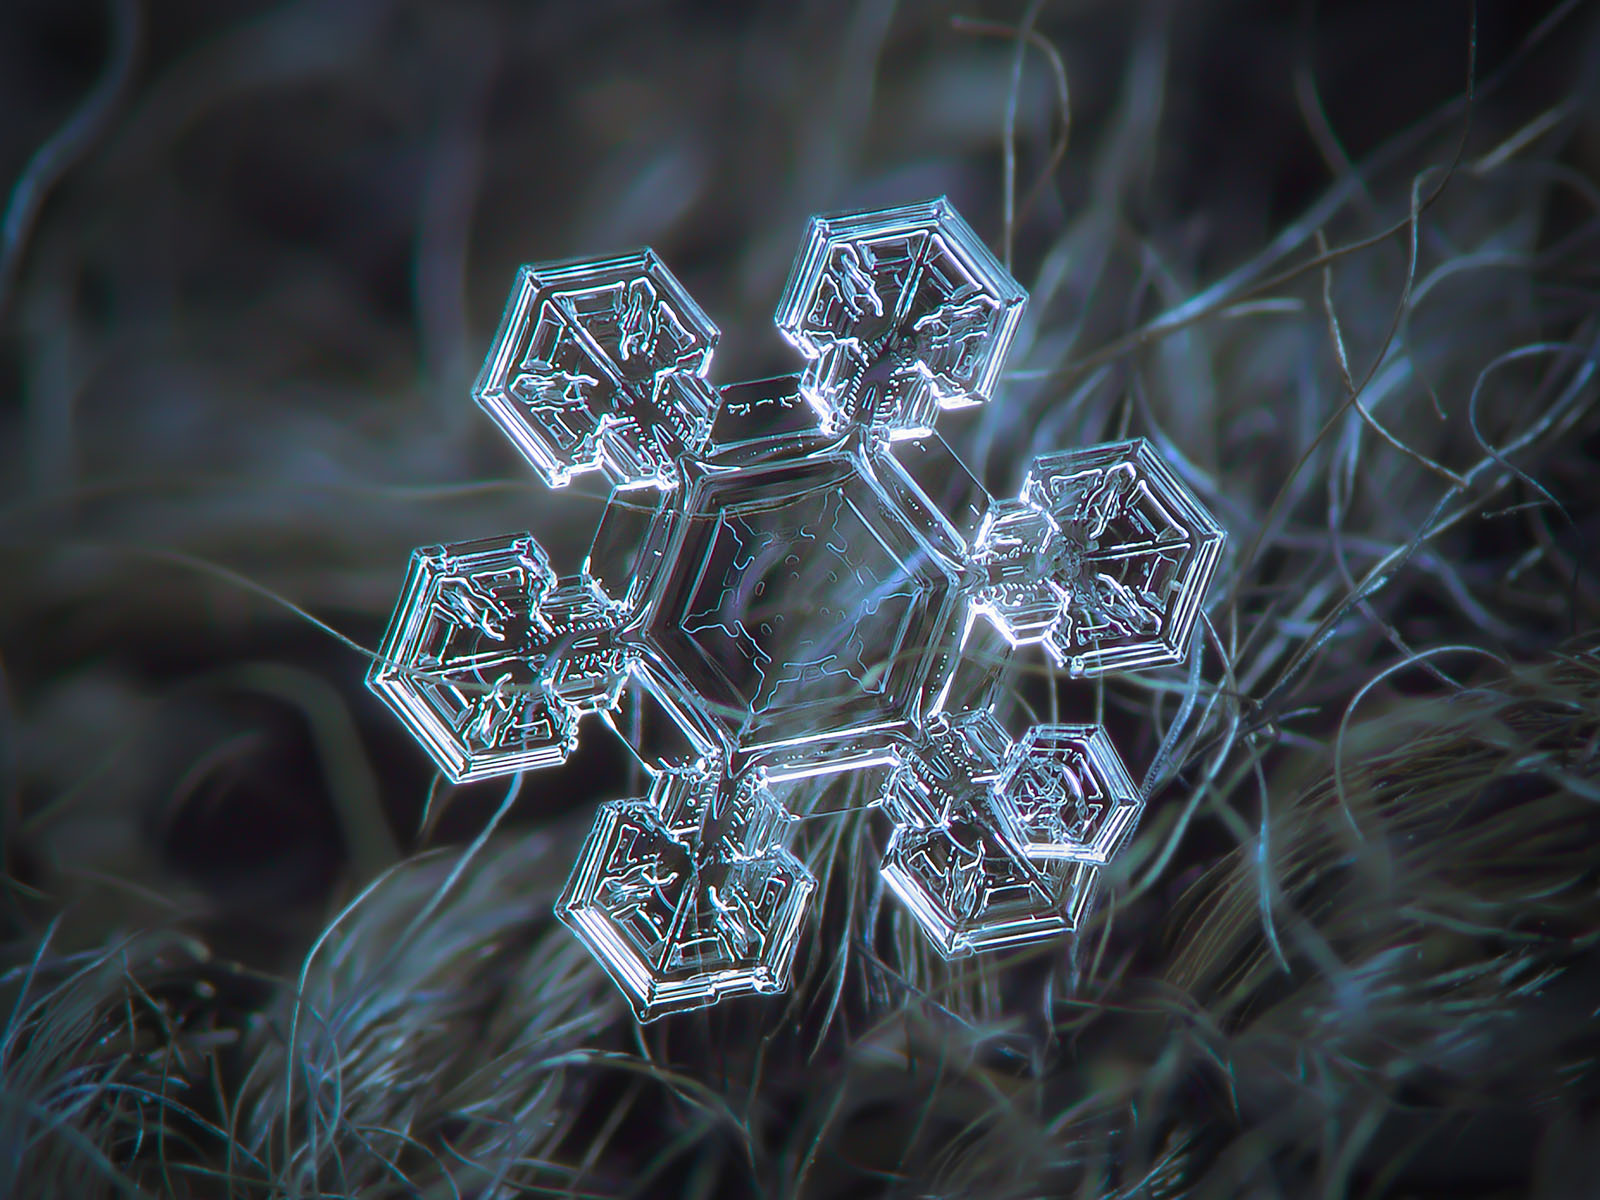 Snowflake image: Icy jewel, real snow crystal with broad arms and complex inner pattern, glittering on dark background